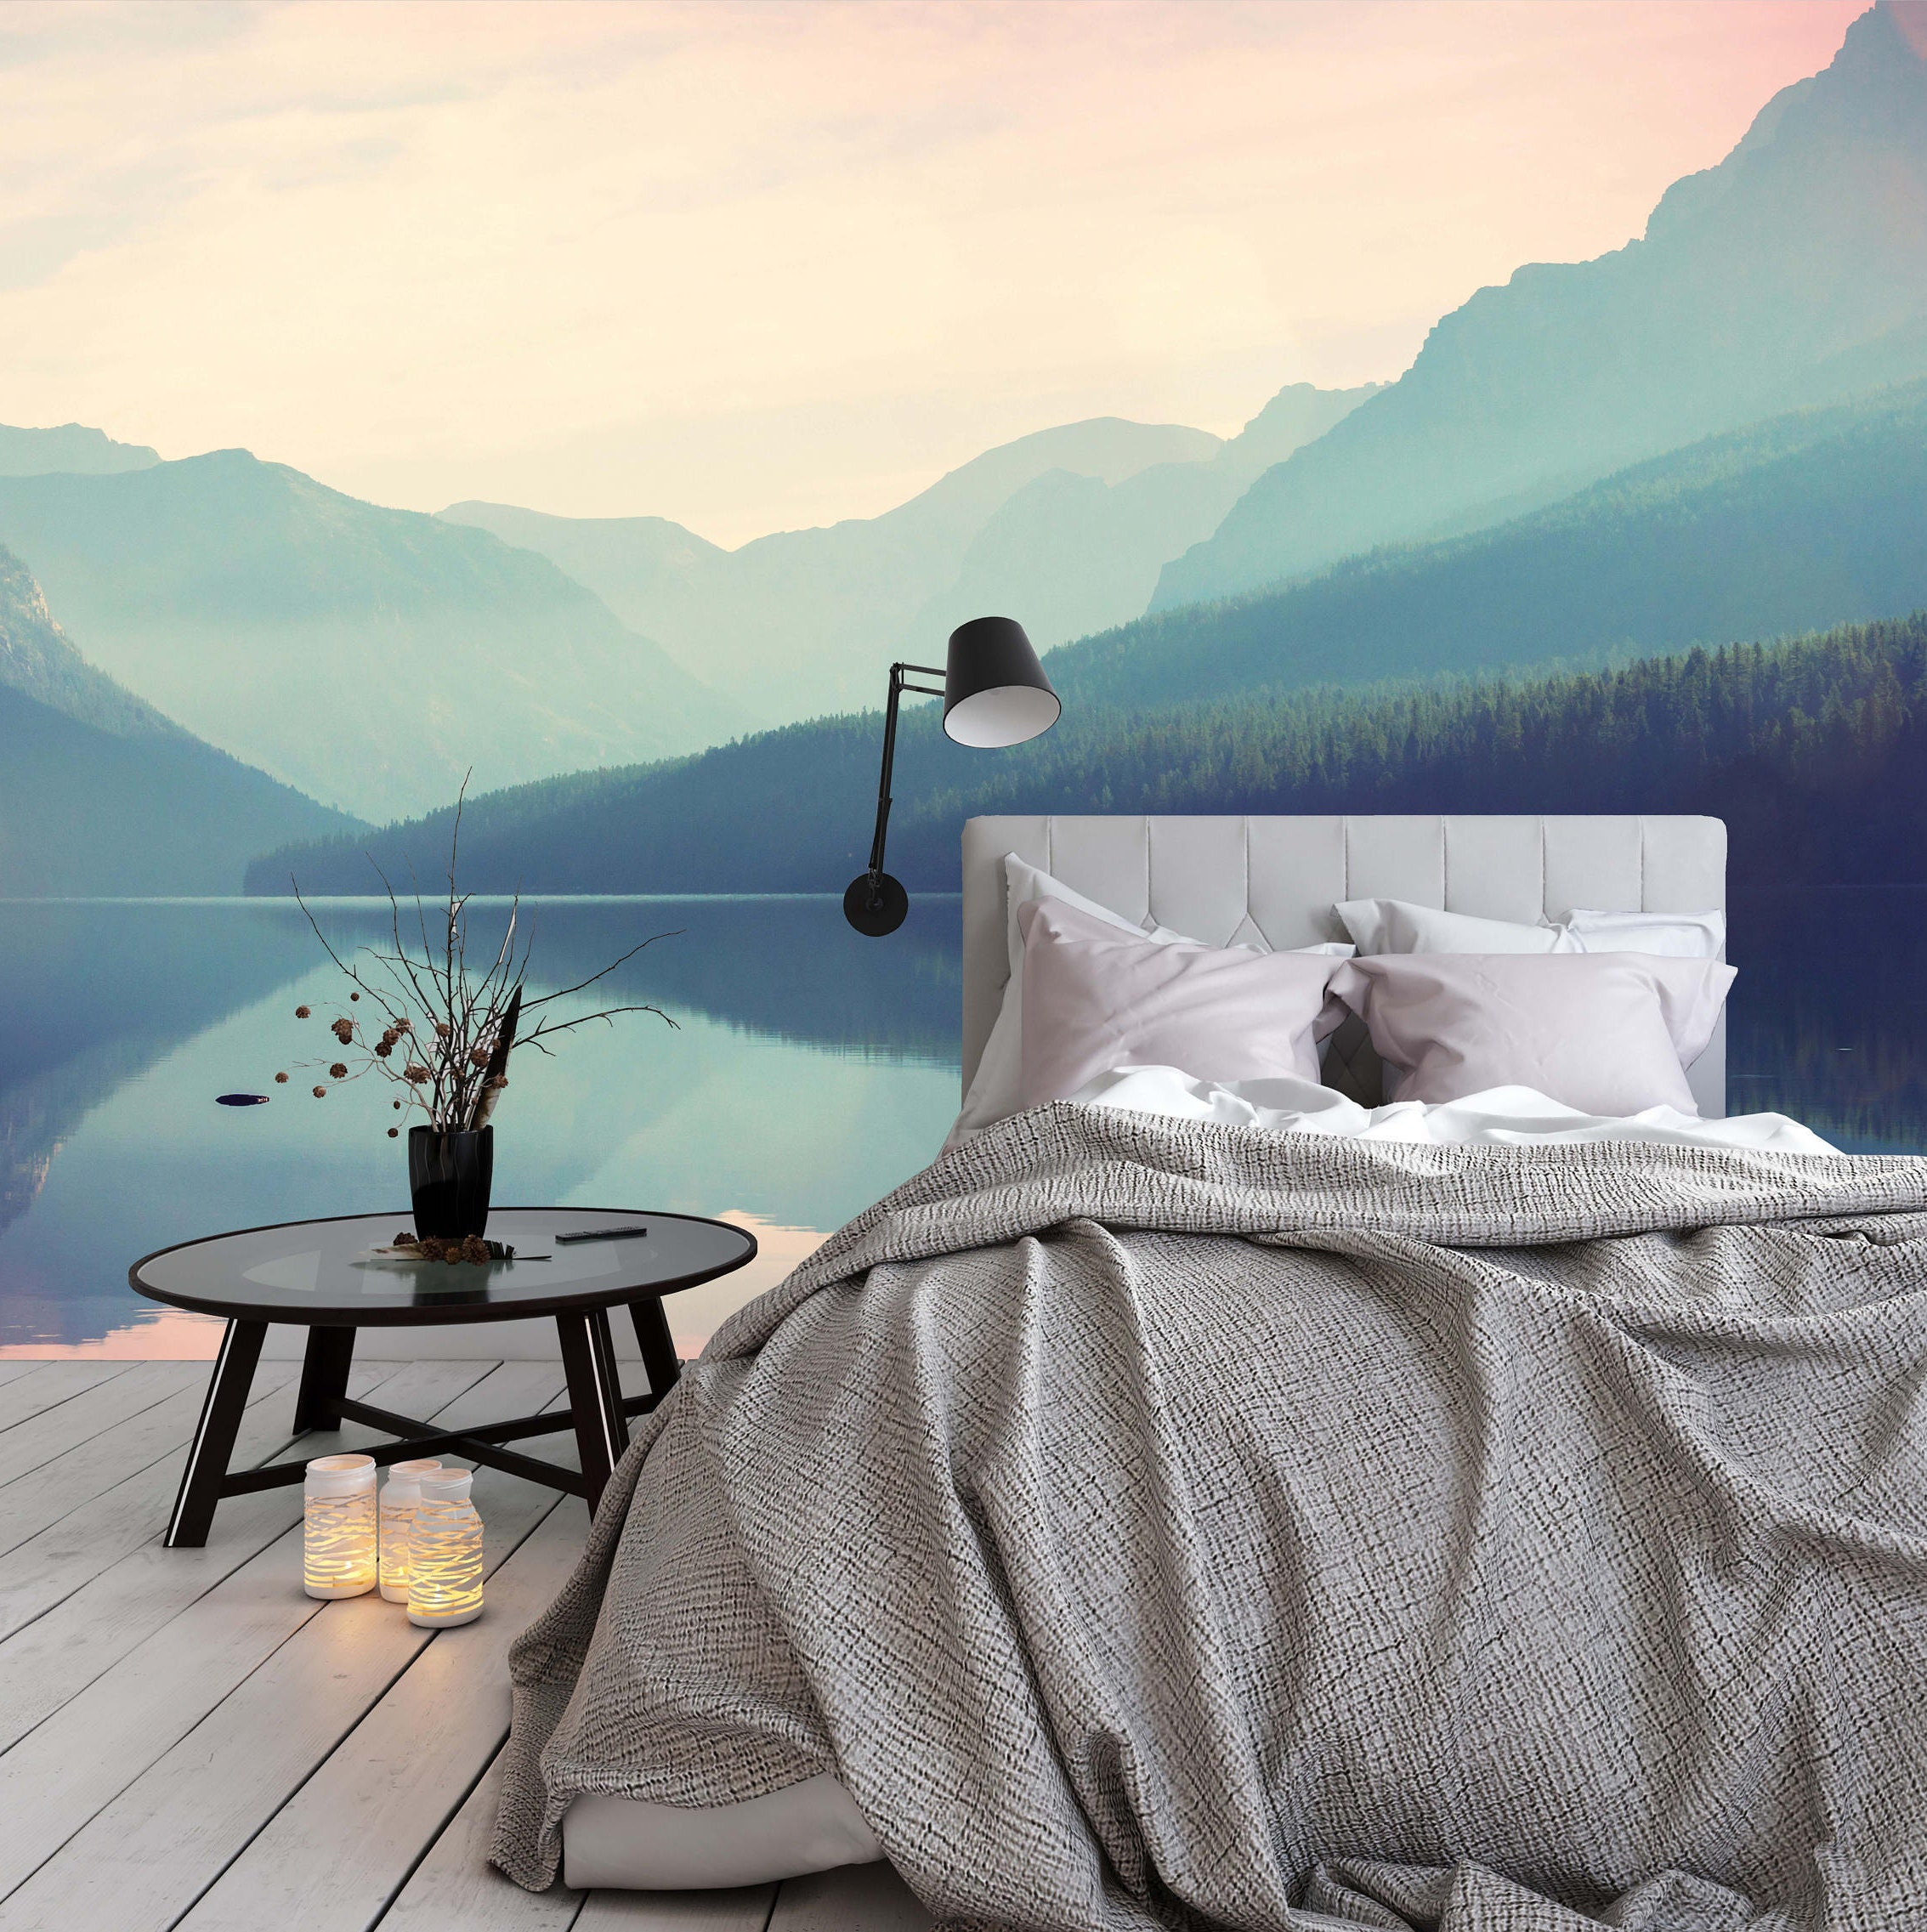 Most Inspiring Wallpaper Mountain Bedroom - il_fullxfull  You Should Have_397777.jpg?version\u003d2